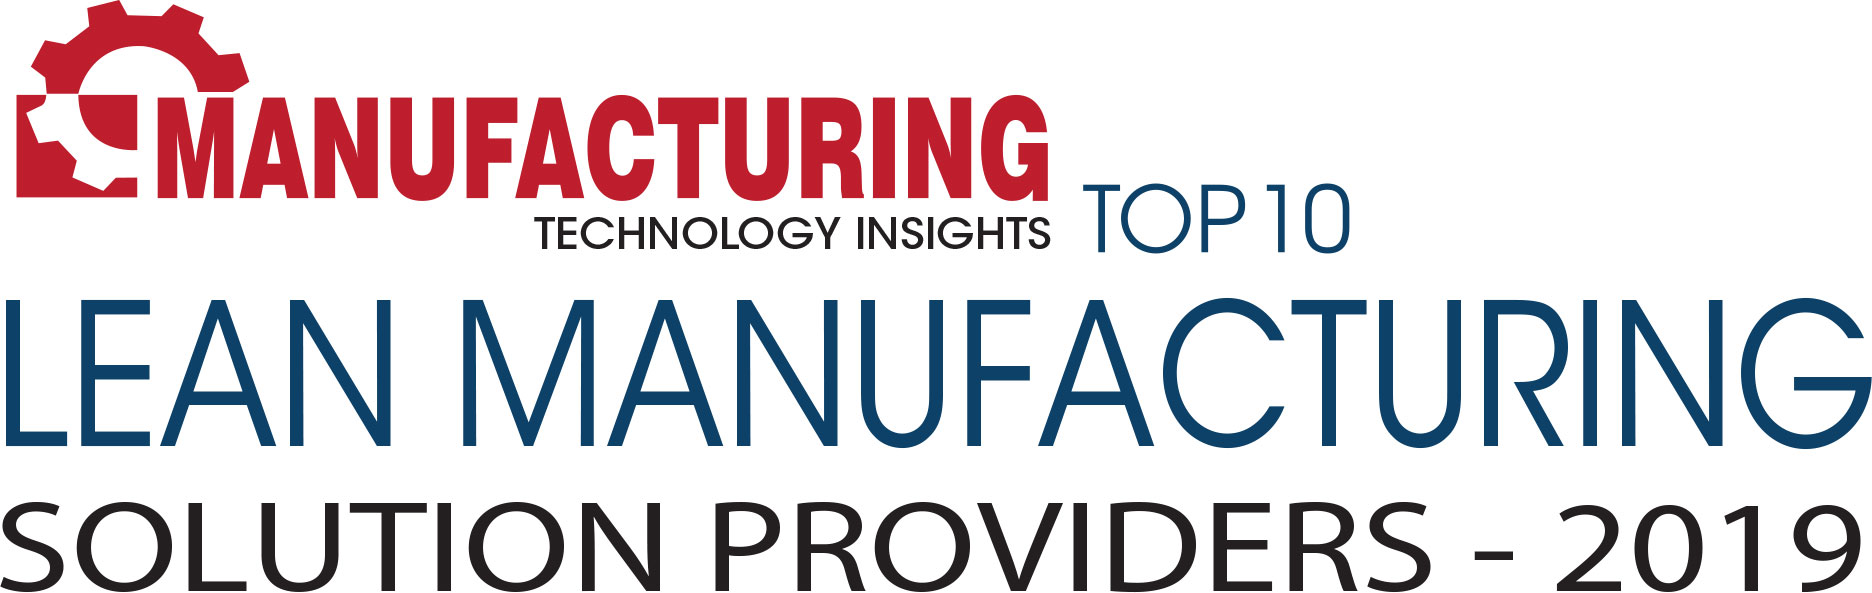 Top 10 Lean Manufacturing Solution Companies - 2019